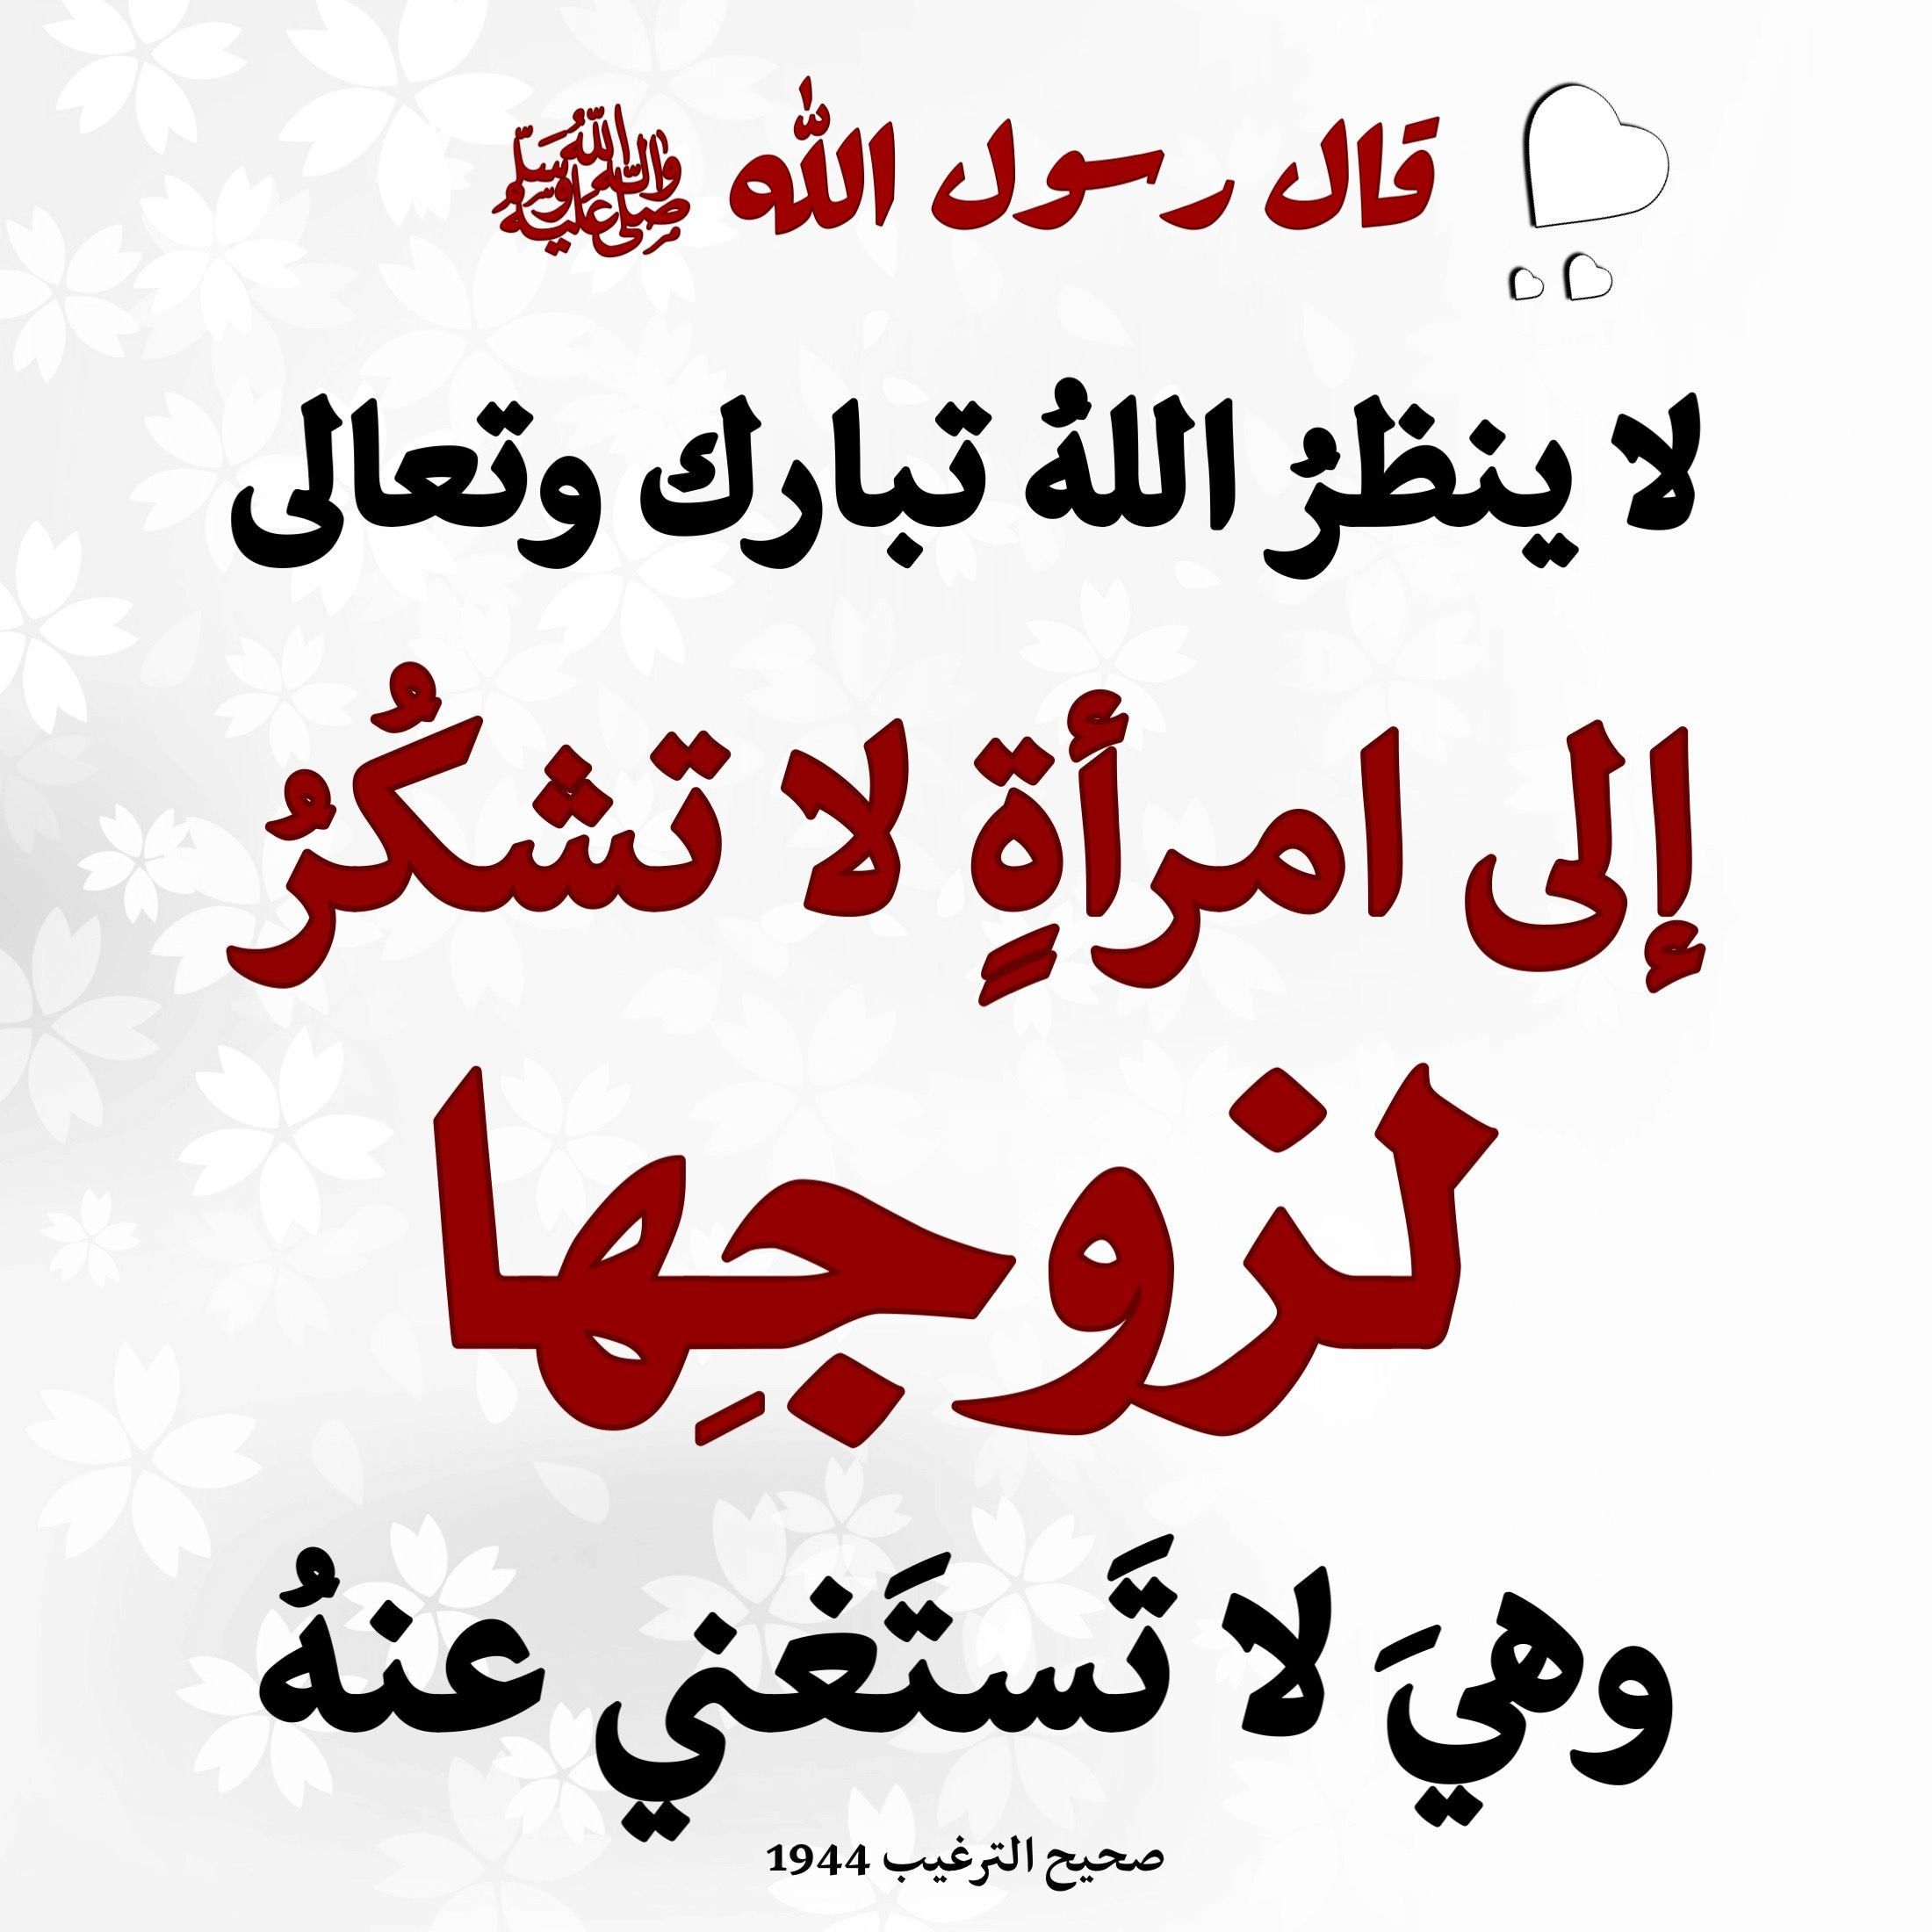 Pin By كنان لقمان On أحاديث نبوية Islamic Inspirational Quotes Islamic Quotes Islamic Phrases